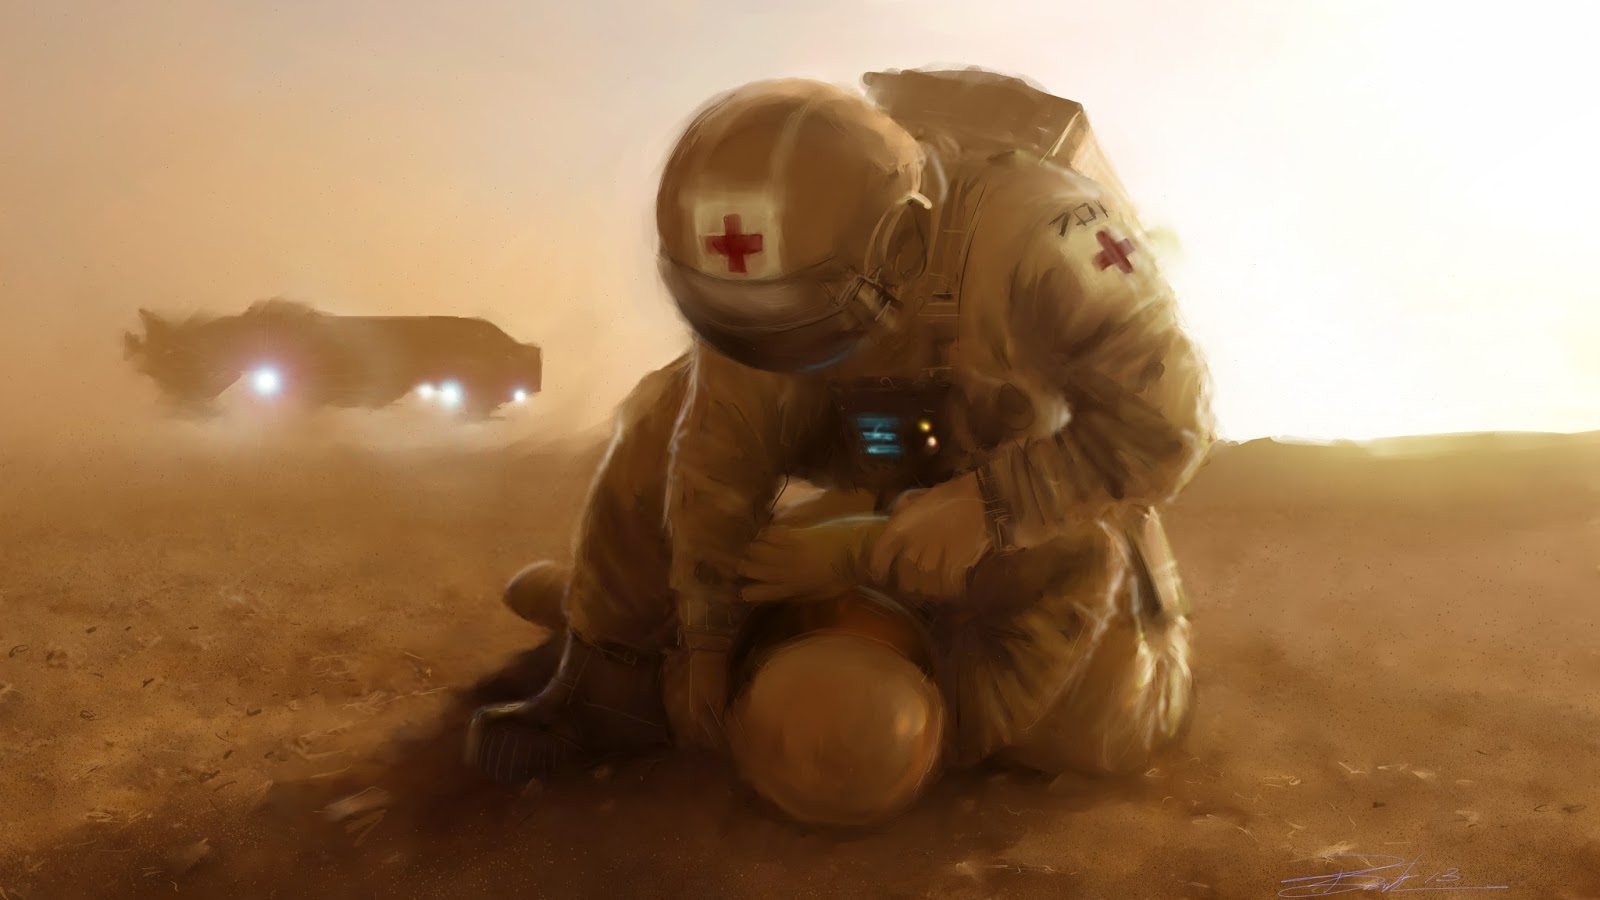 mars-medic-by-phil-smith